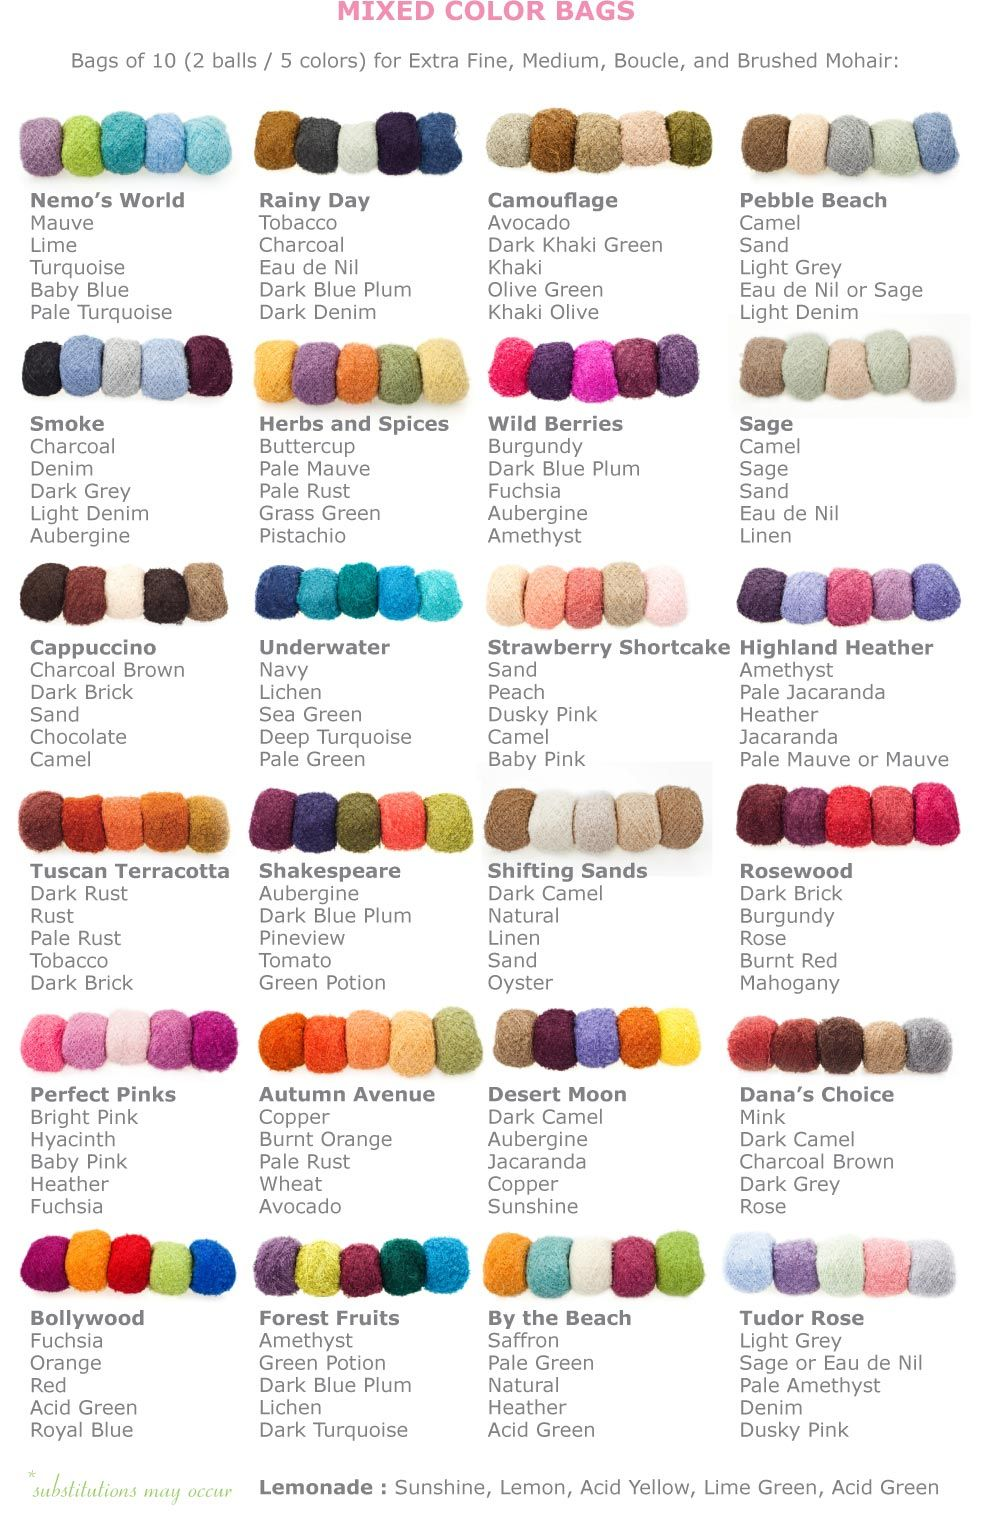 Nice Color Scheme Ideas For Afghans Blankets Or Throws This Is Definitely Something To Keep In Mind When Ping Yarn